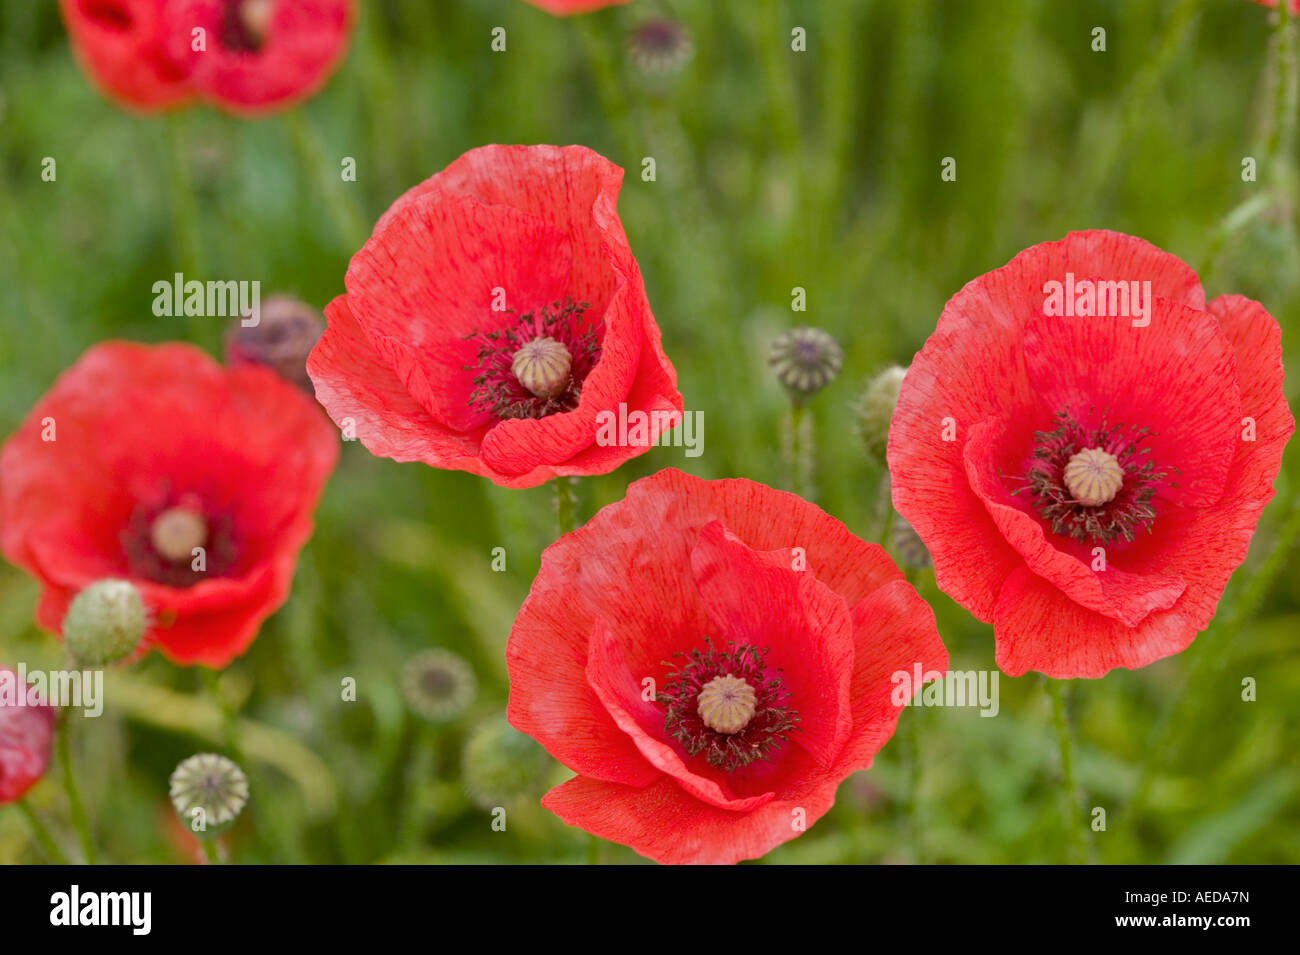 group of red poppy flowers in an english meadow - Stock Image